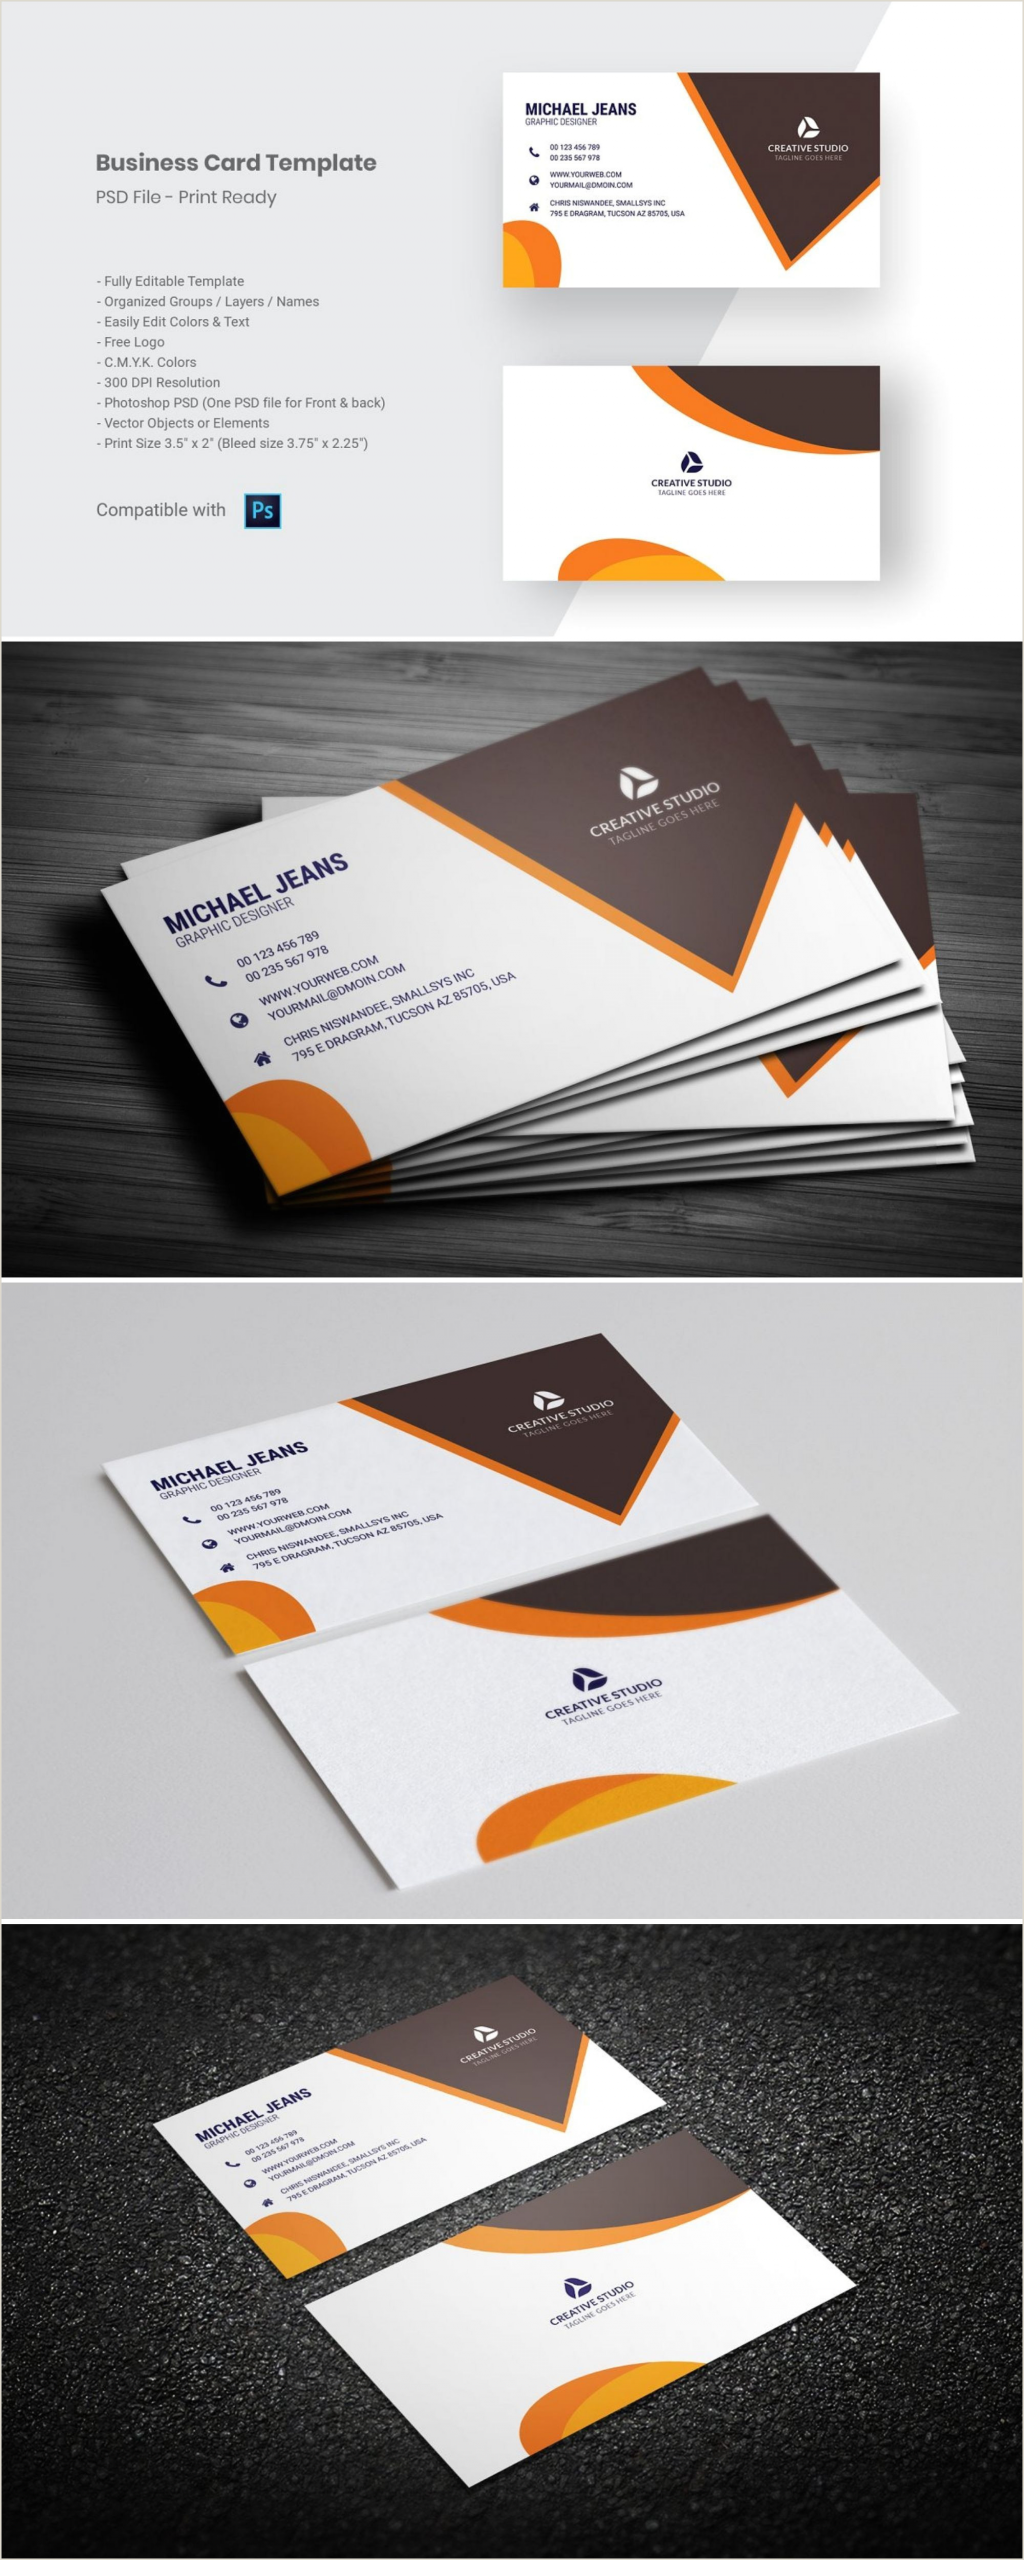 Samples Business Cards Modern Business Card Template